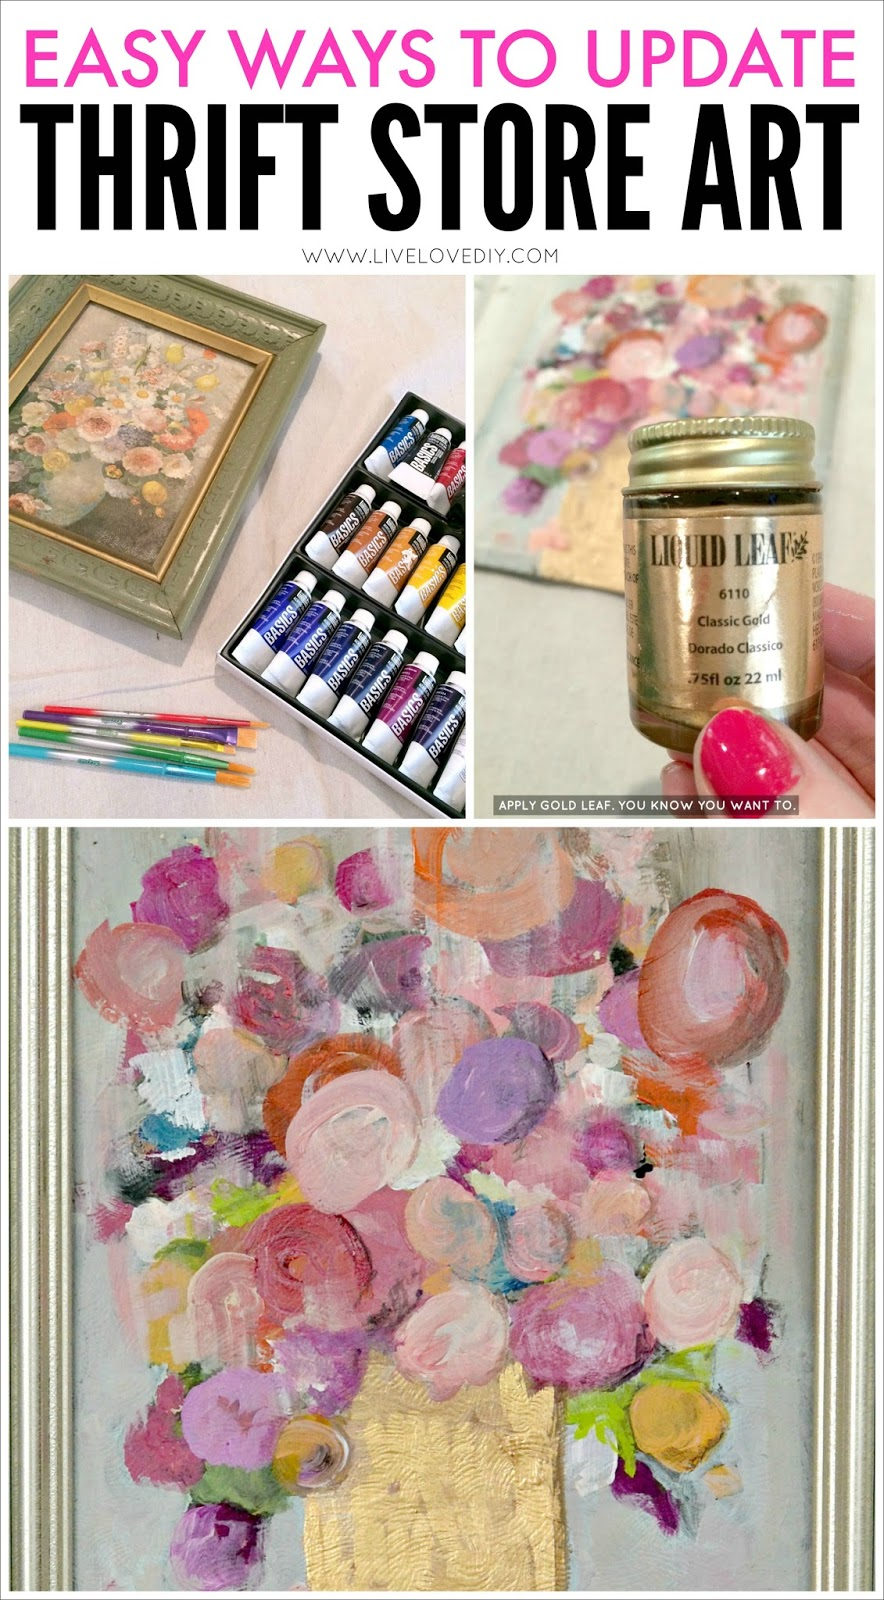 How To Easily Update Thrift Store Art! Love this idea!